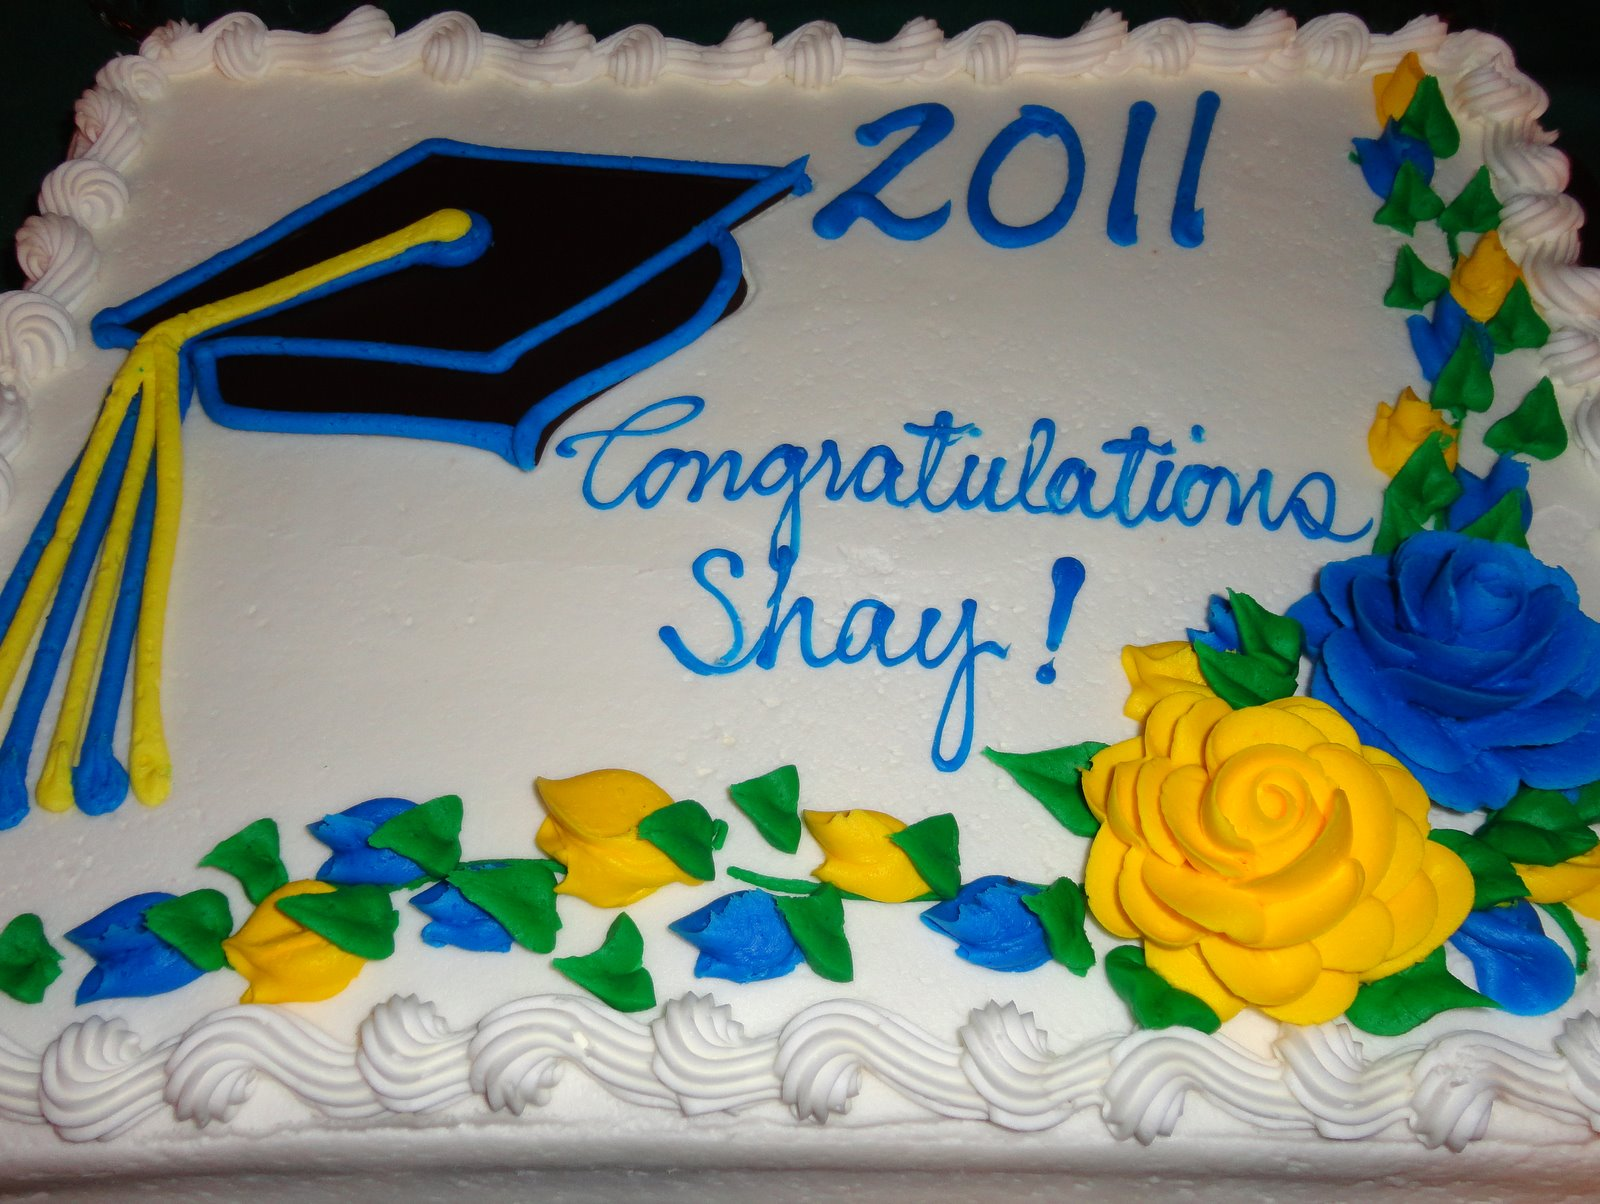 Graduation Sheet Cakes With Chocolate Blue And Gold Frosting